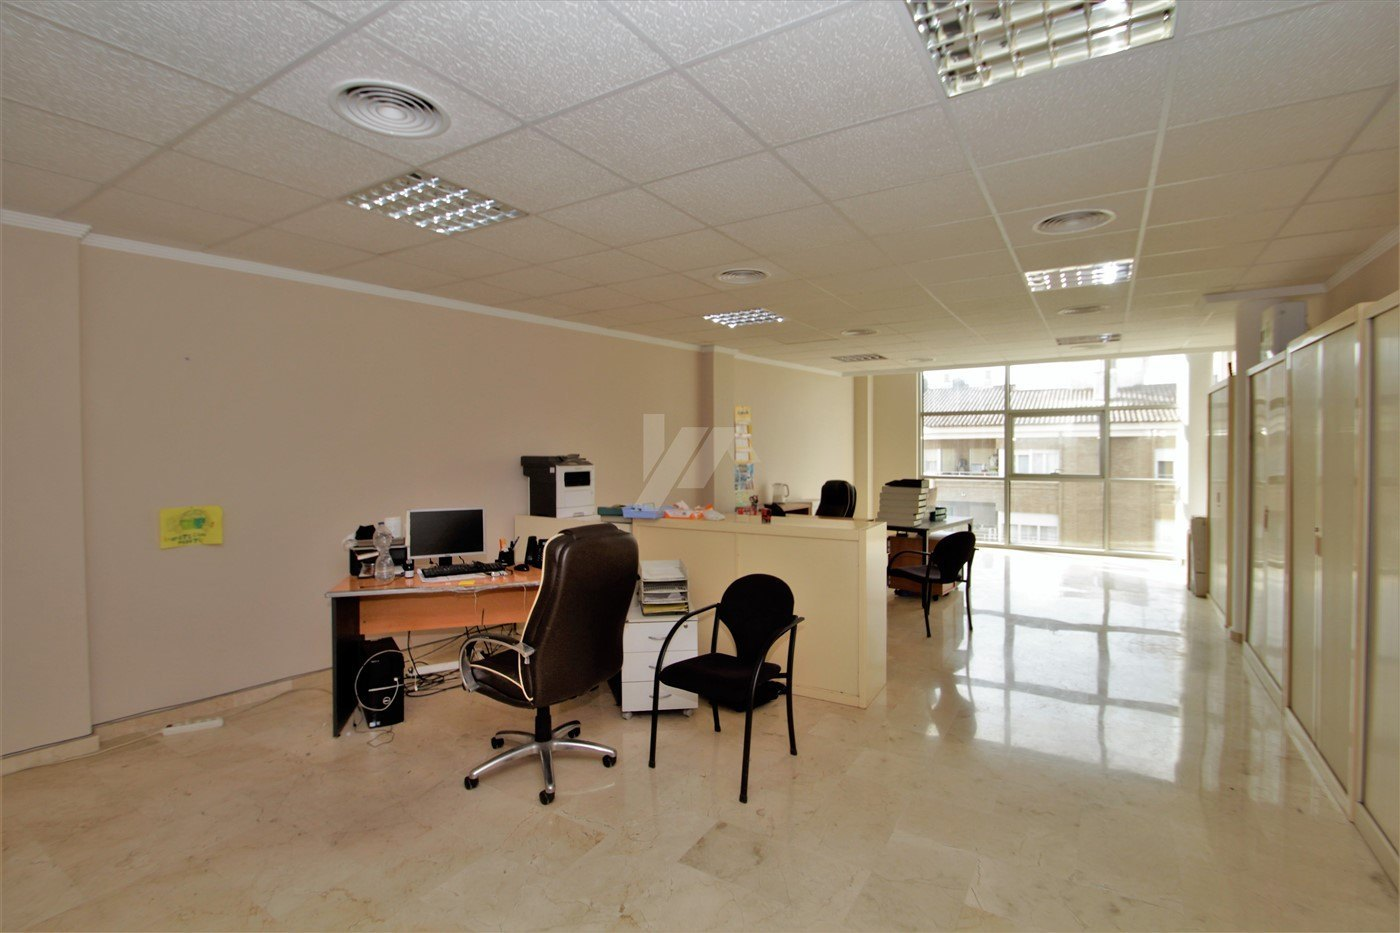 Office space for sale in Teulada, Costa Blanca.